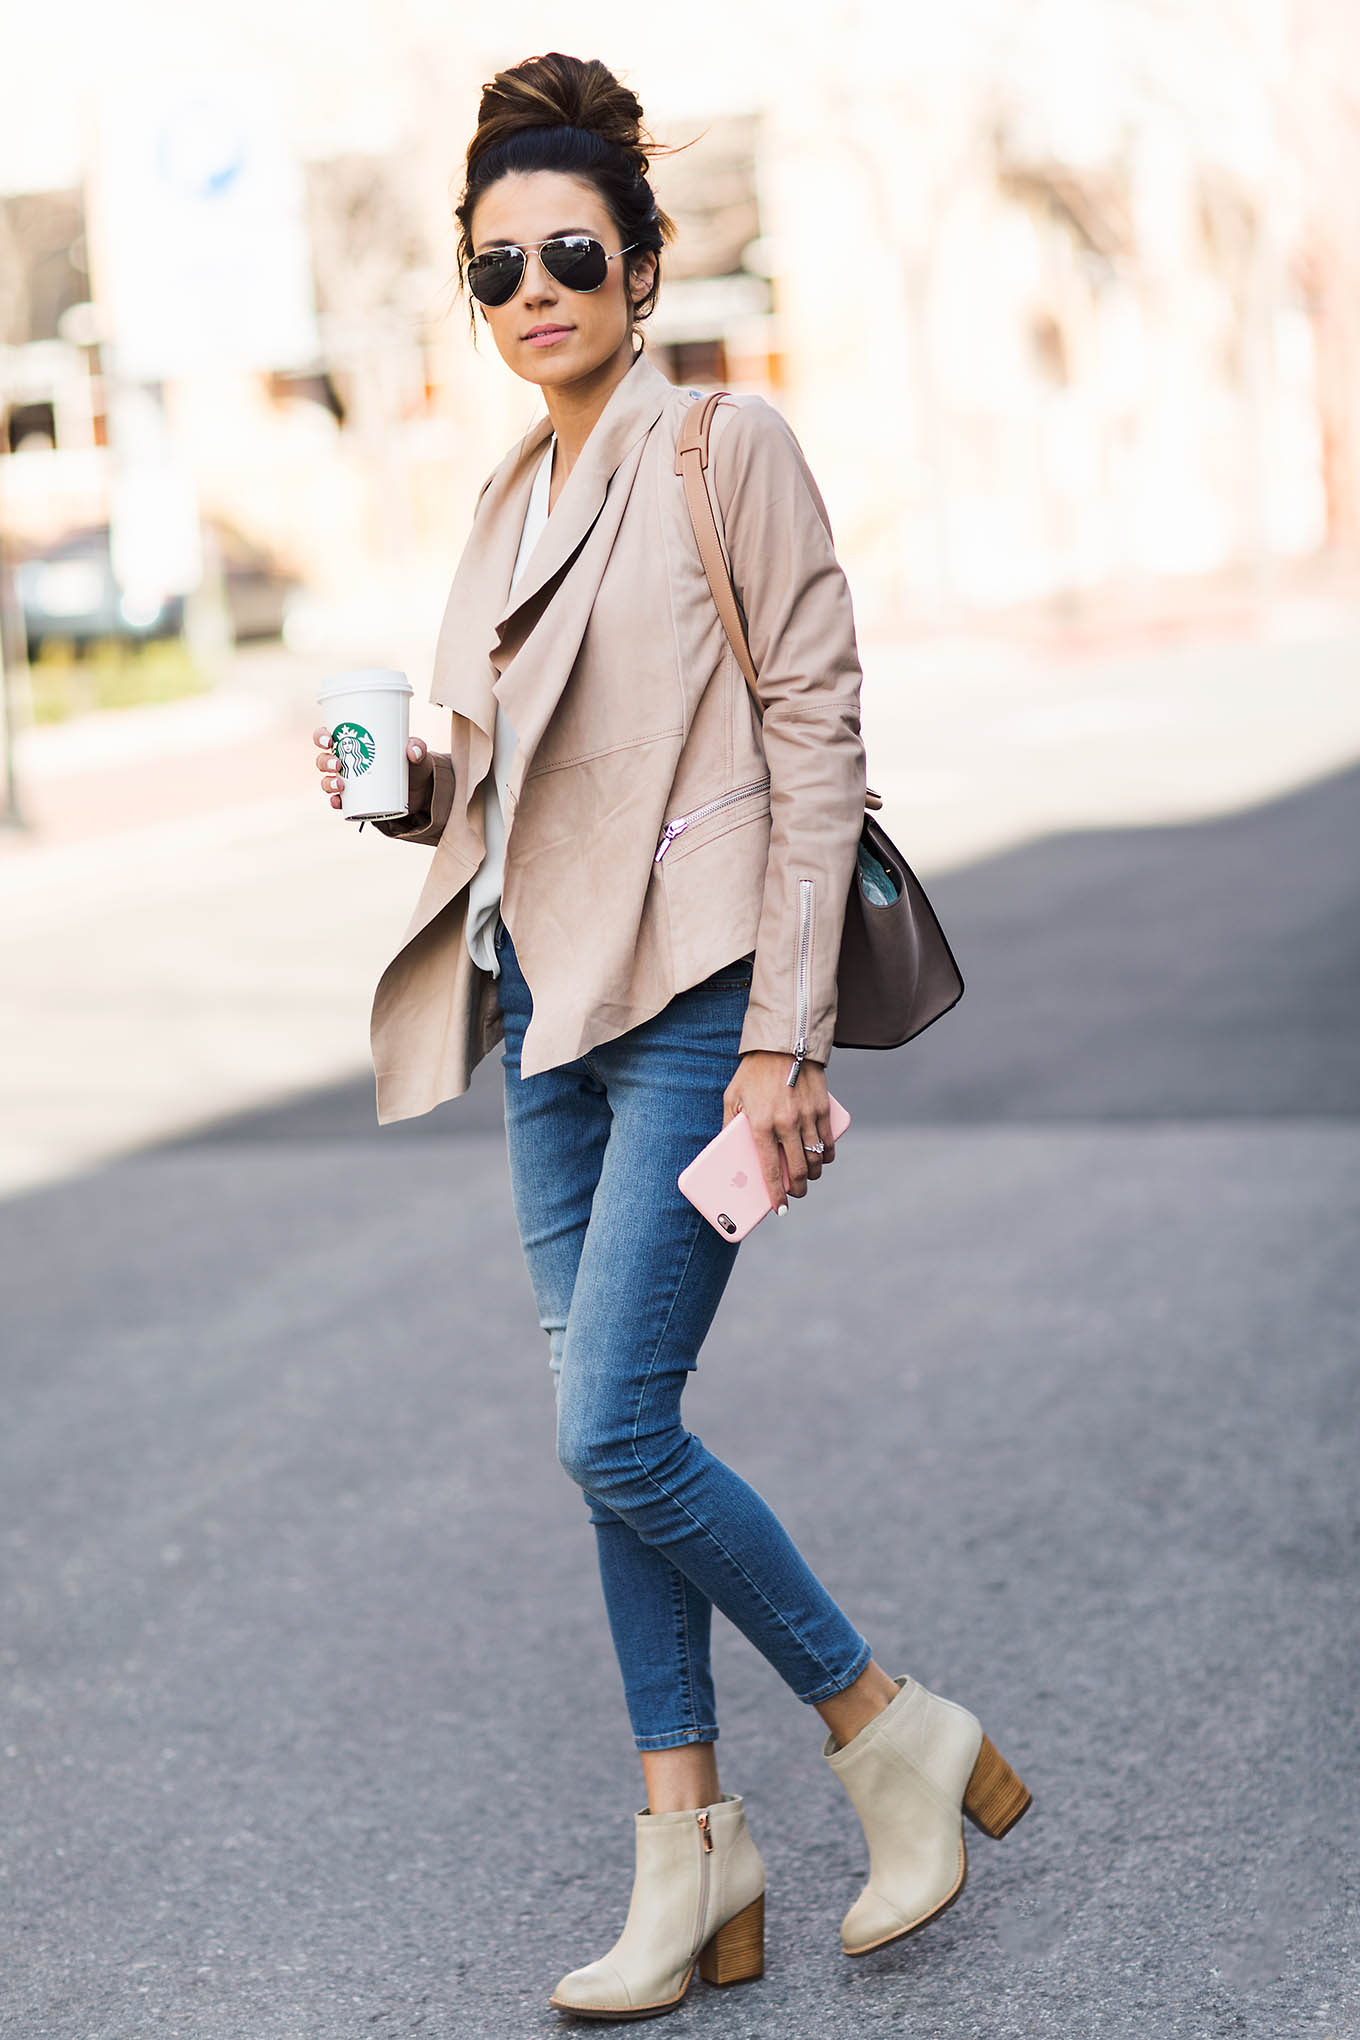 Wearing nude and neutral tones is top on our list of hot trends this spring! Not only will they always look elegant and smart, but neutral tones will also keep you looking fresh when worn with brighter colours like these jeans. Via Christine Andrew. Boots: Hushpuppies, Jacket: Nordstrom, Jeans: Old Navy.